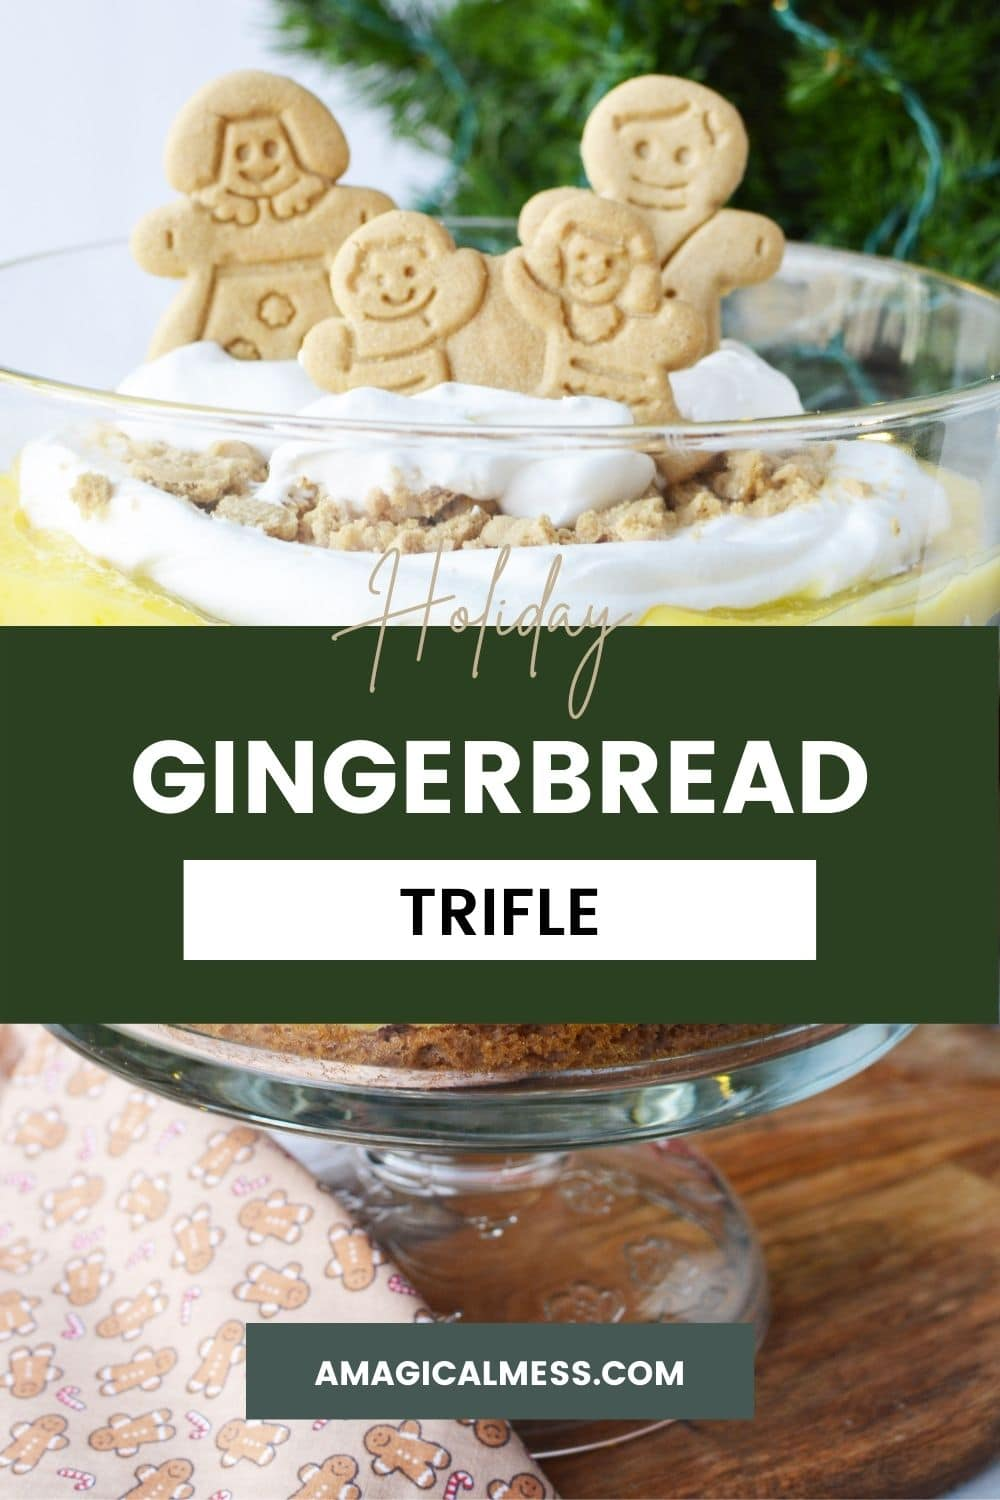 Gingerbread family cookies on a pudding trifle